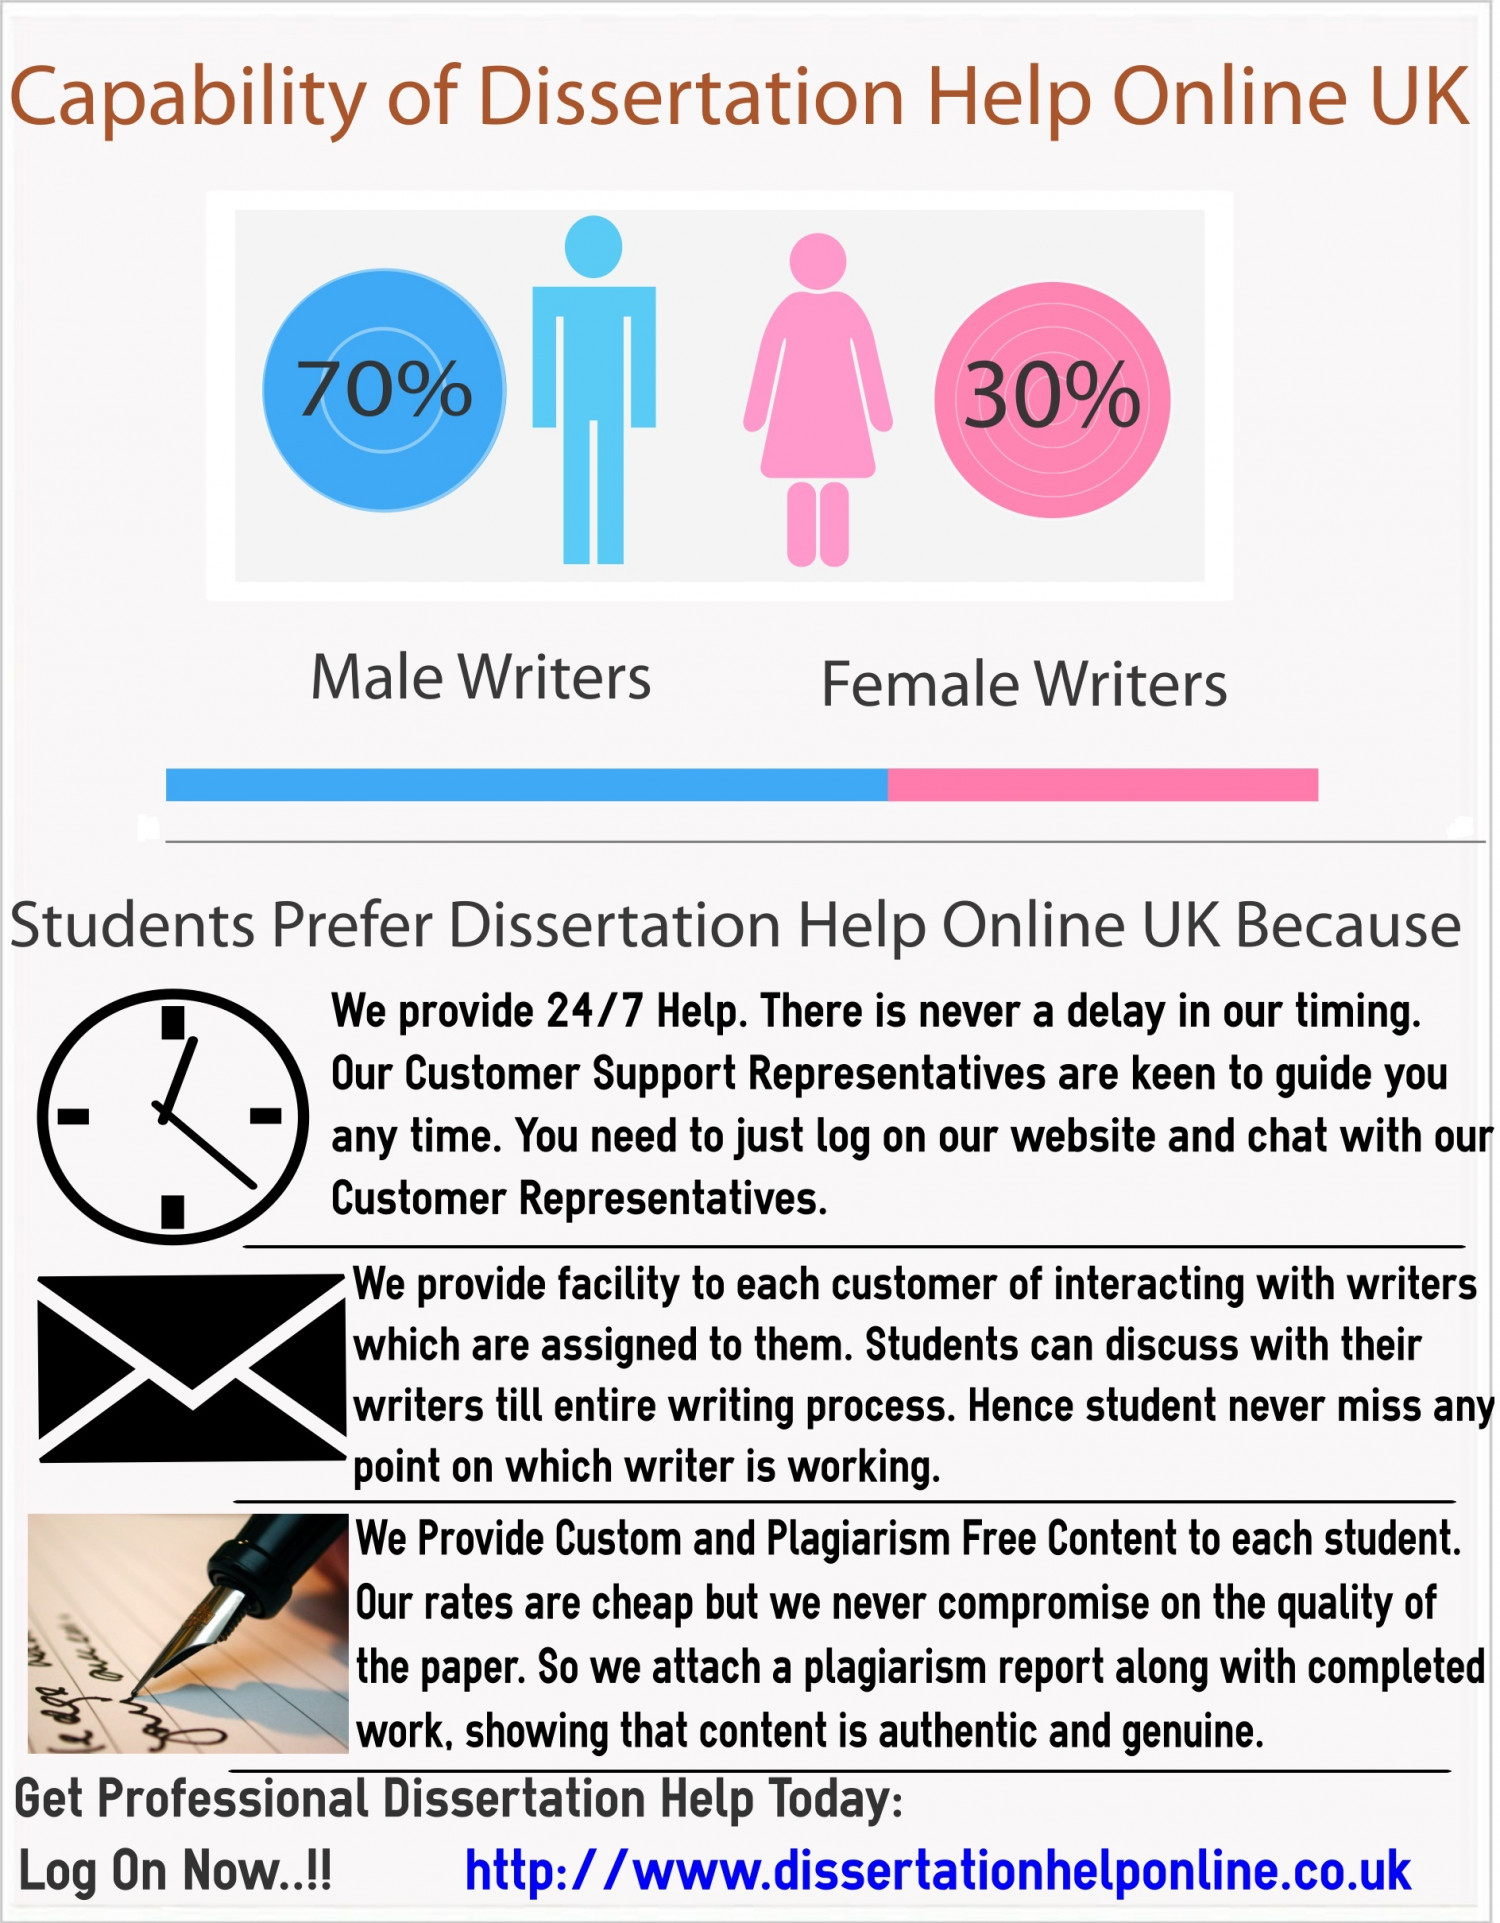 doctoral dissertation writing assistance Proficient dissertation writing help to doctoral students is available at researchwritingdeskcom our phd writing services are authentic and superb in quality.